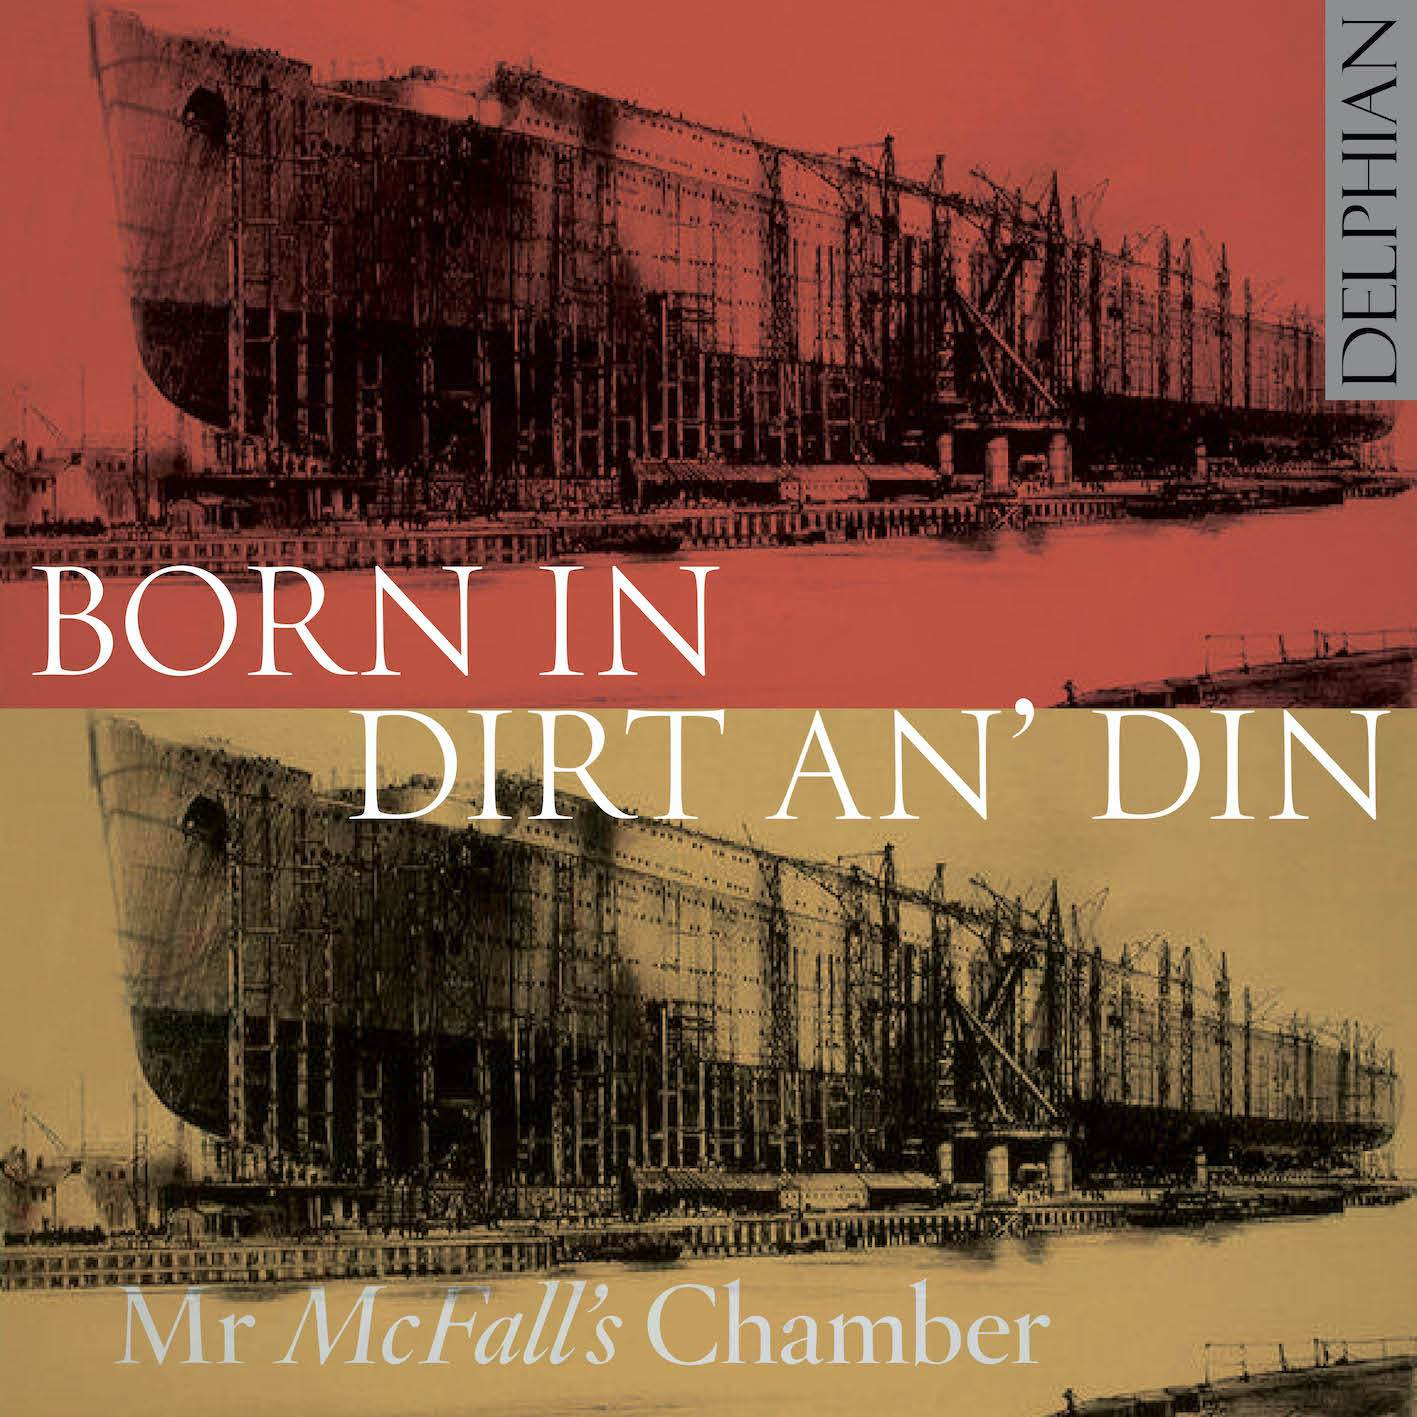 Born in Dirt an' Din CD Delphian Records